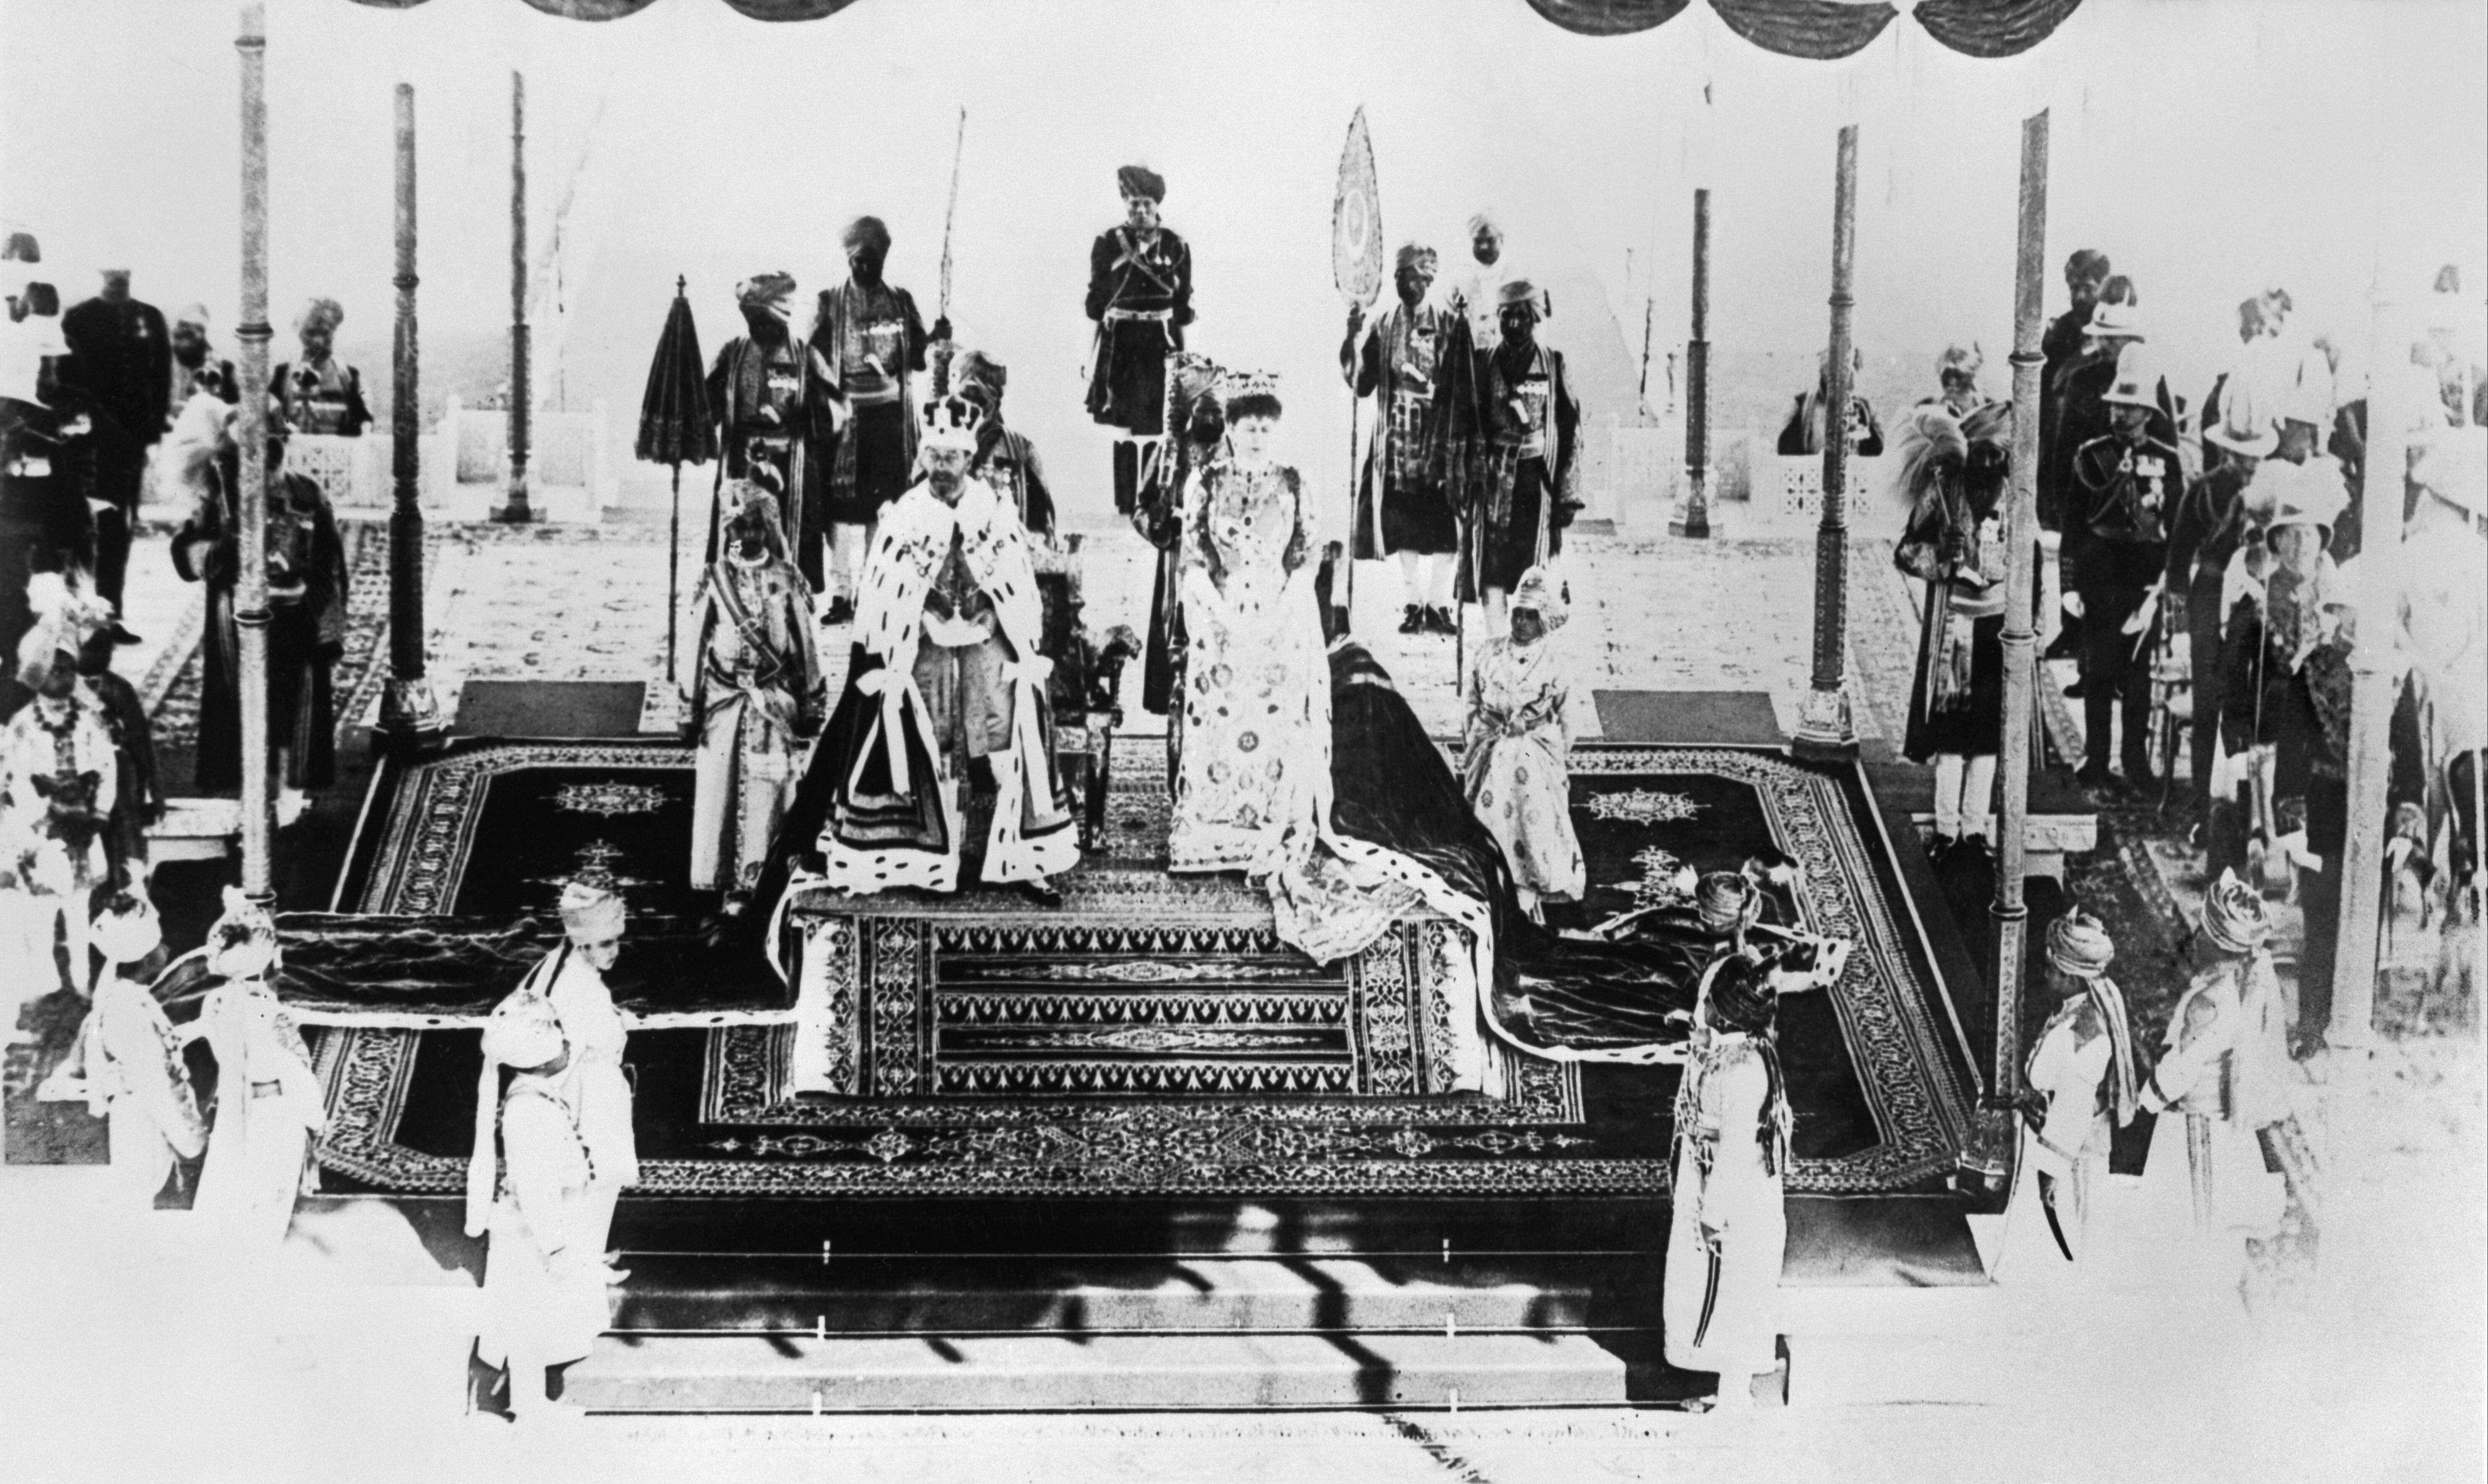 King George V and Queen Mary during the Delhi Durbar, the ceremony at which people of note in India came to pay tribute to the new Emperor and Empress of India following their coronation in Britain, in 1911. The King wears the newly made Imperial Crown of India and both wear their Coronation robes. The Crown had to be made specifically for the occasion as the Imperial State Crown could not be legally removed from Britain. This is photograph Q 107150 from the collections of the Imperial War Museums.